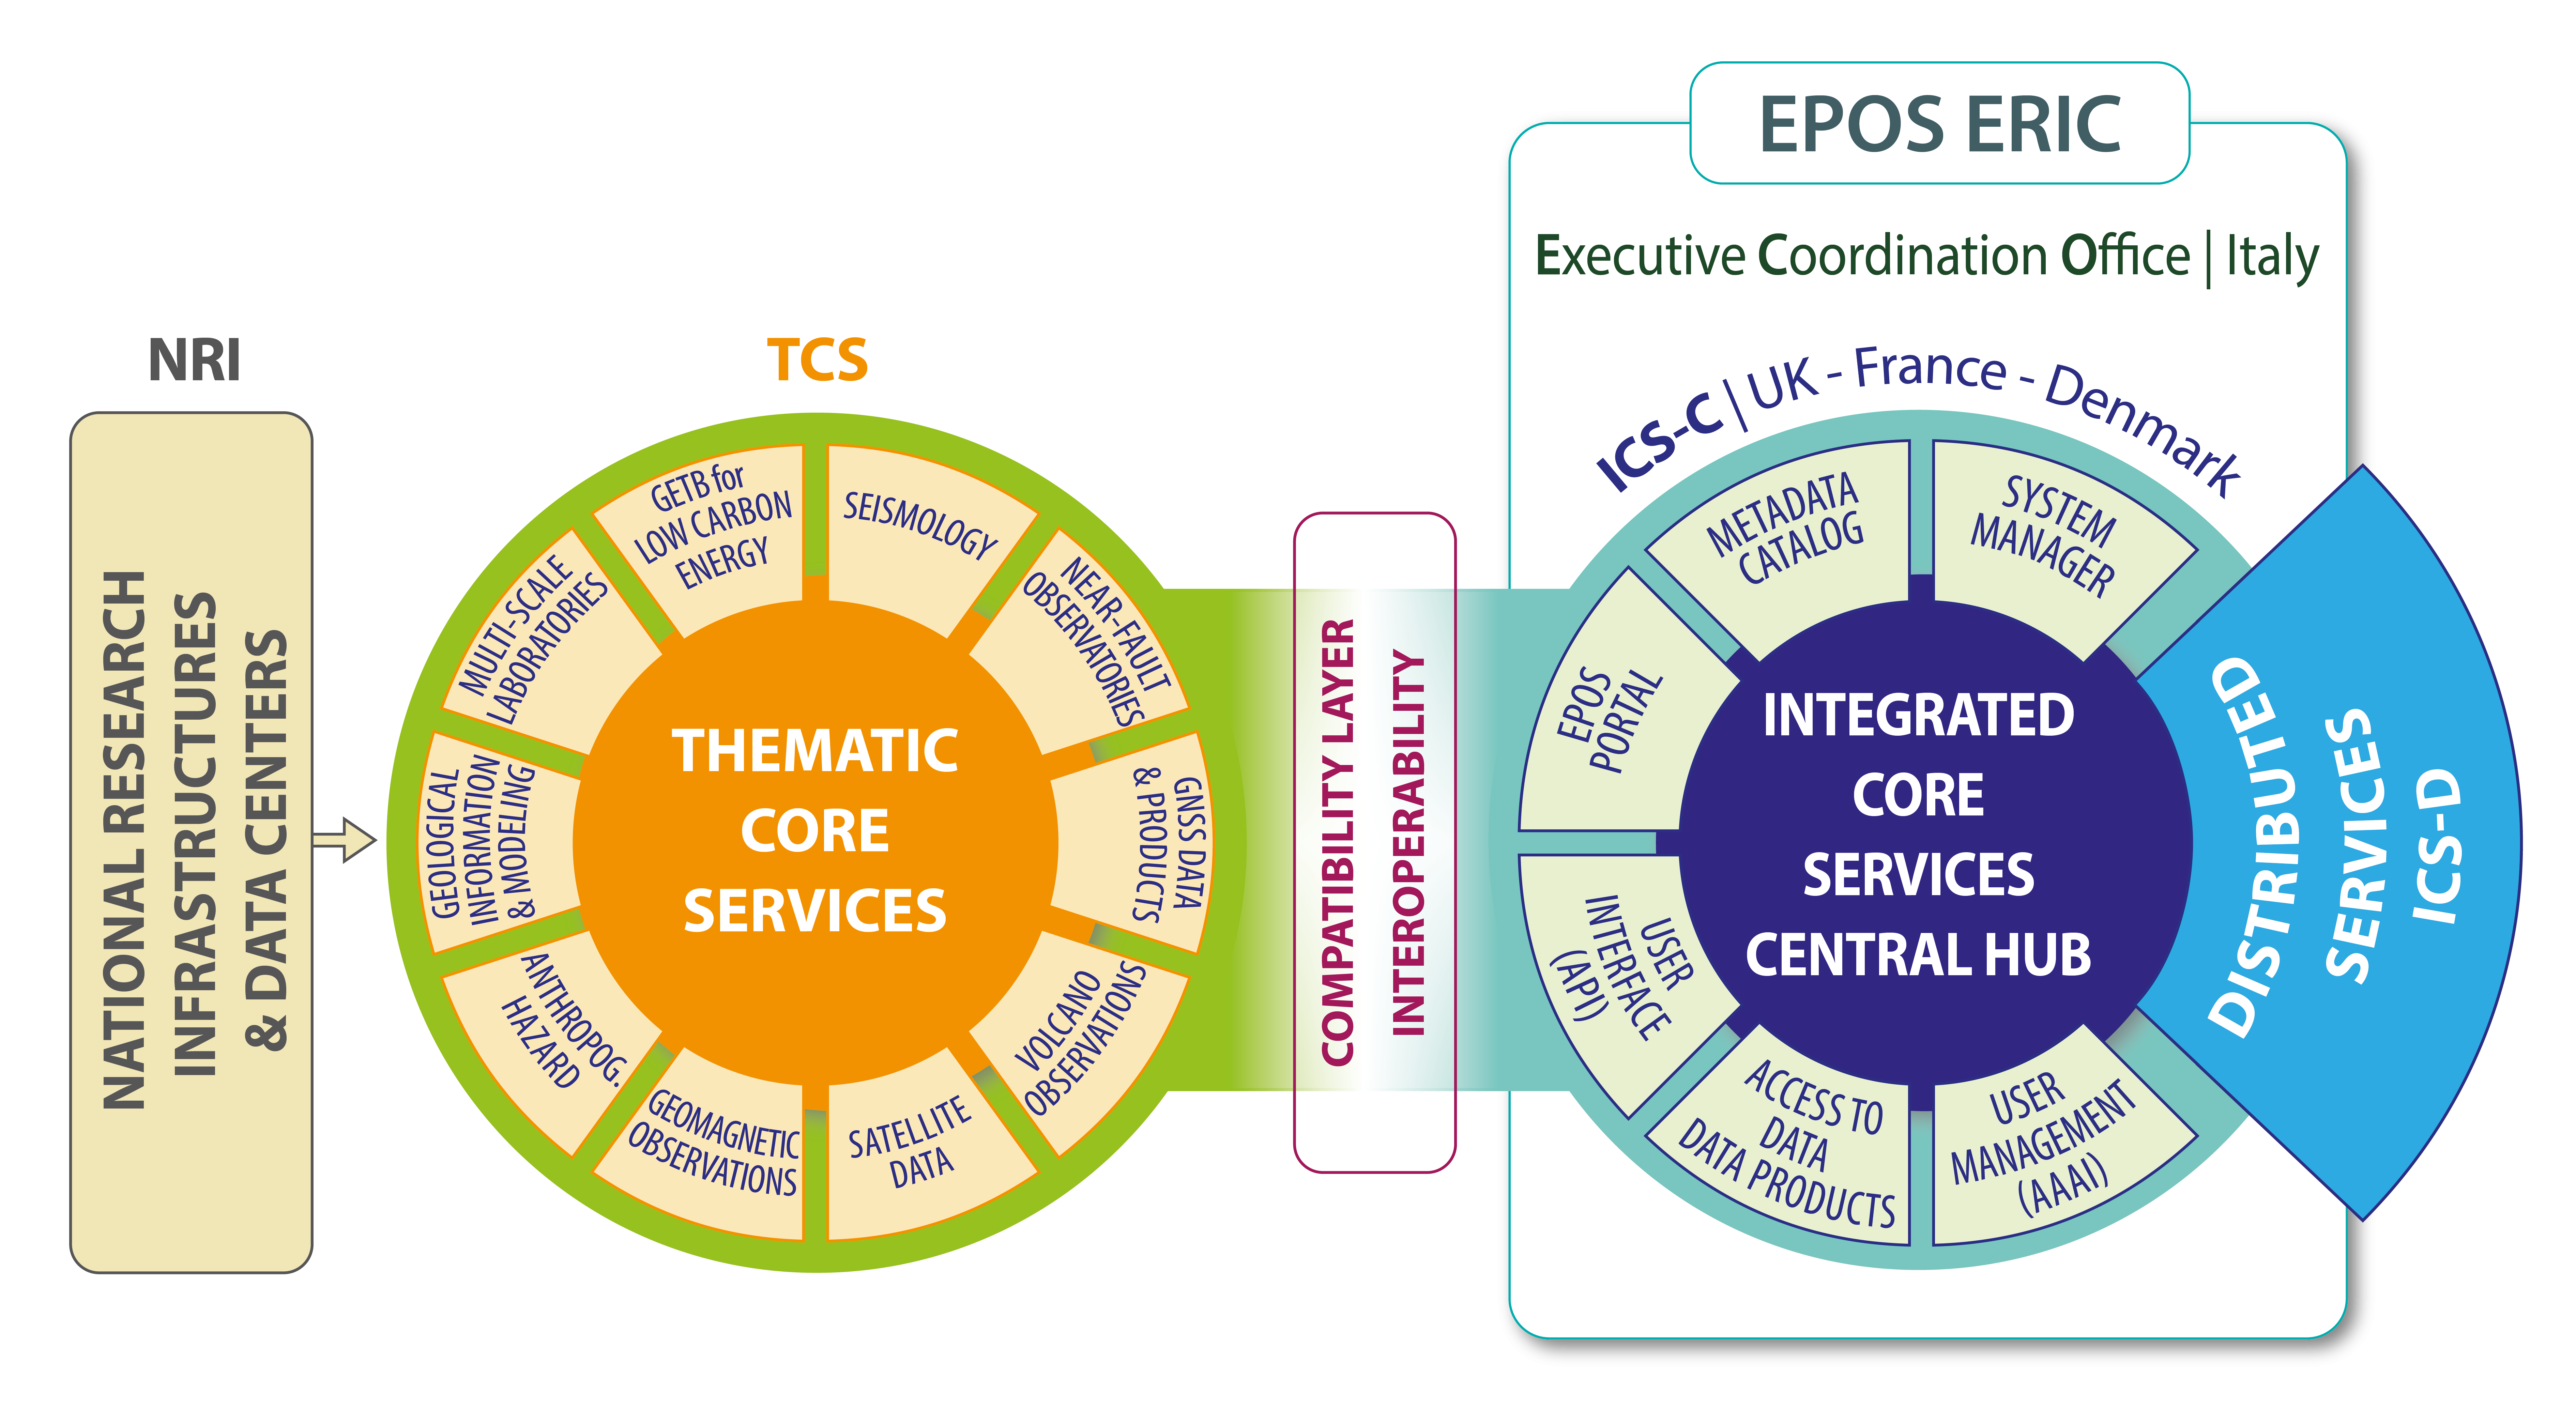 Main elements of the EPOS Architecture*